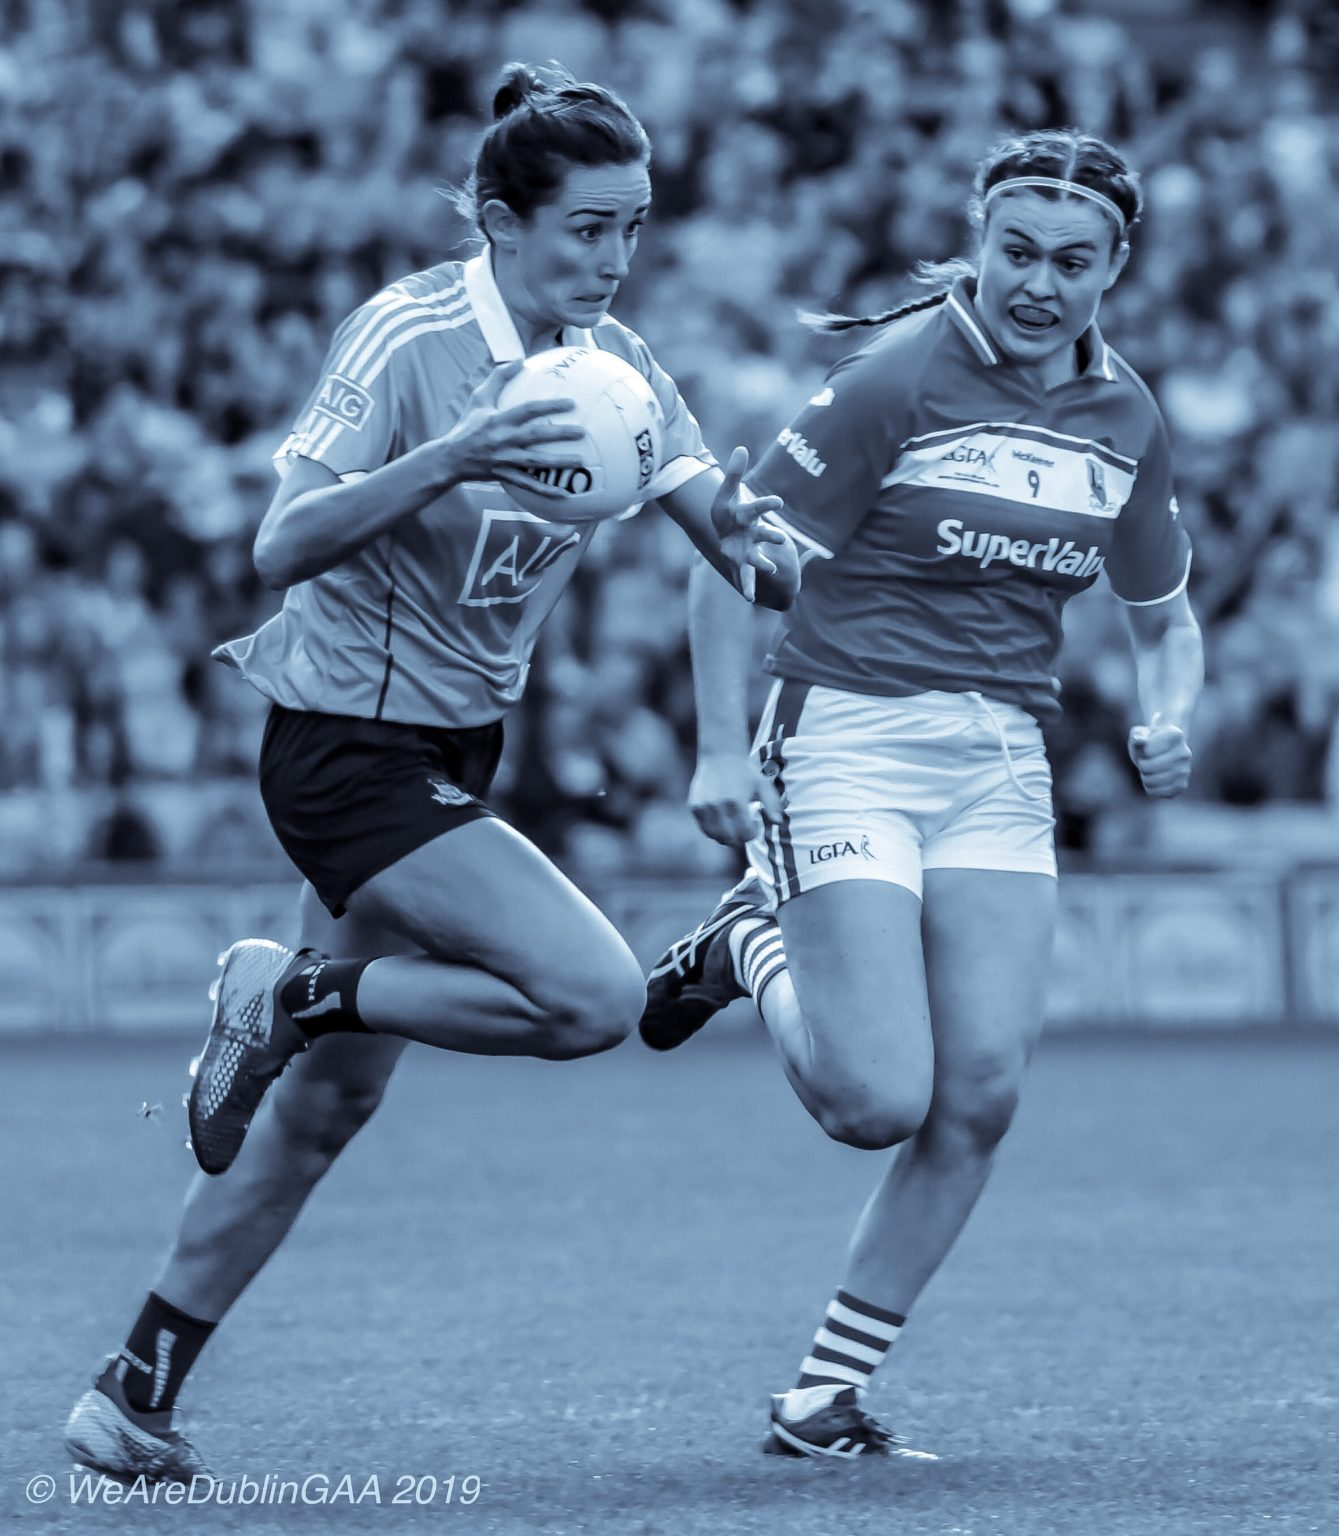 A dublin Ladies footballer and Cork Ladies footballer in action during the 2018 All Ireland Final, both sides meet again in the 2019 Lidl NFL semi final